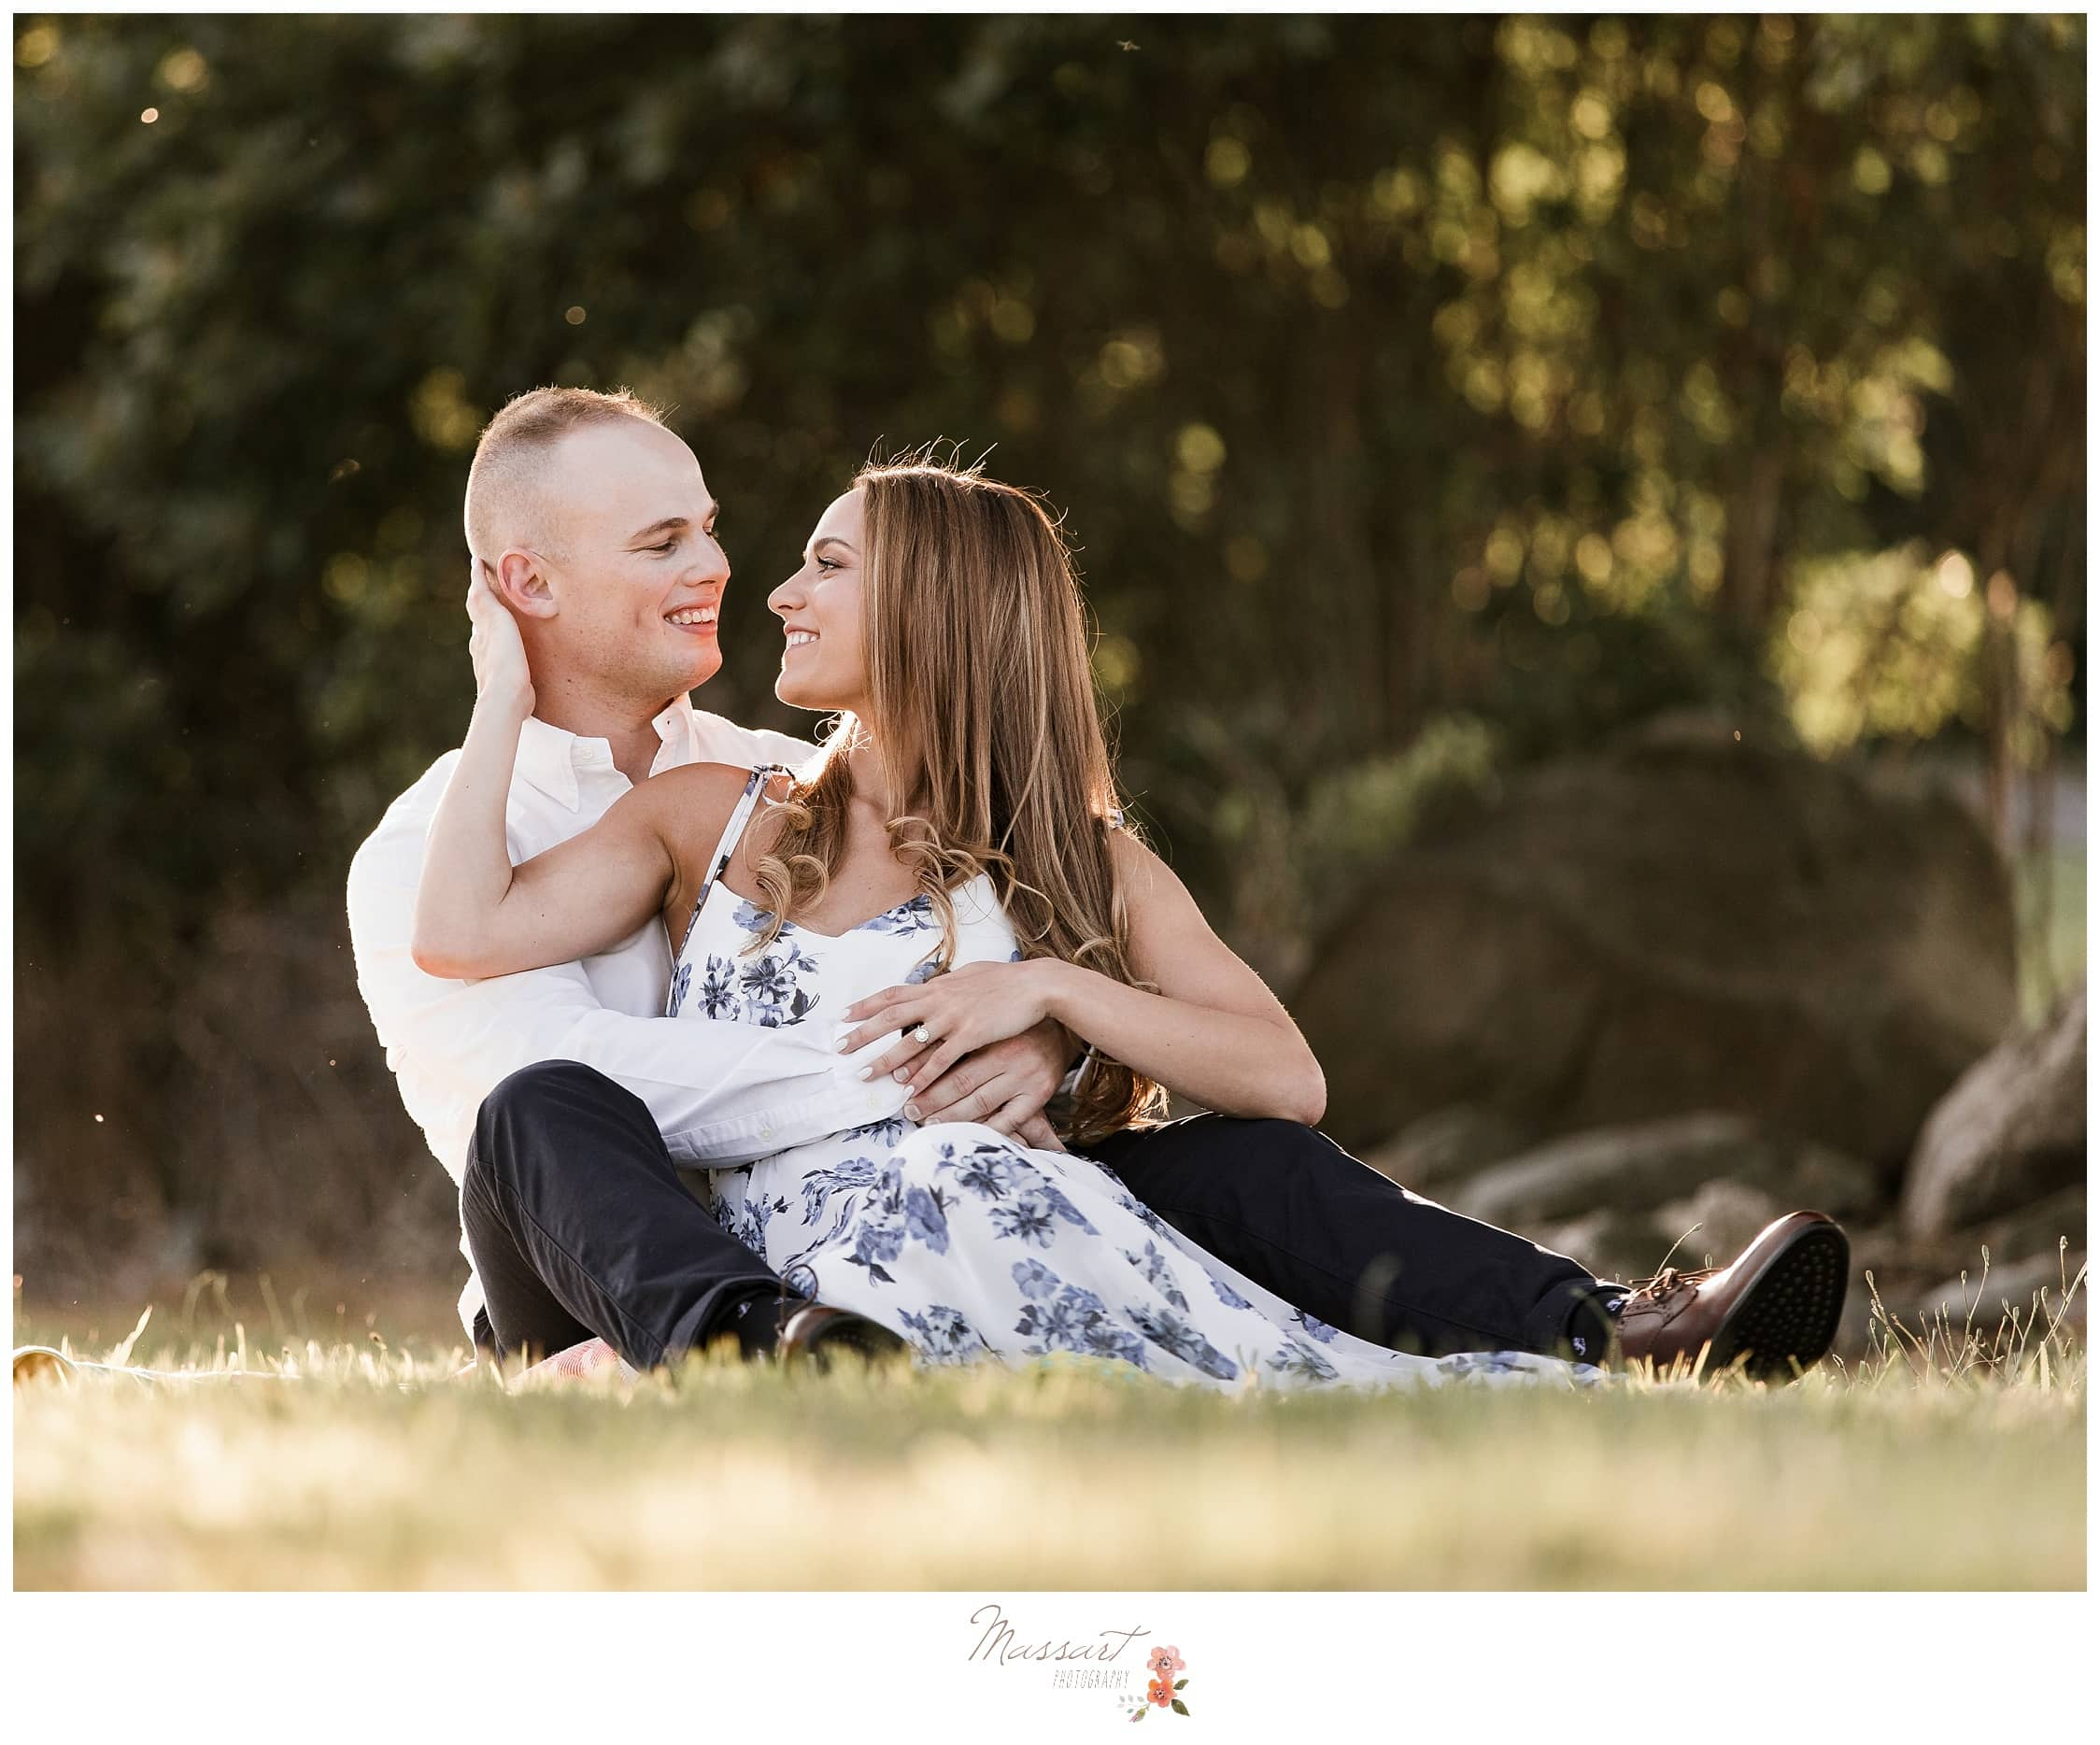 Newly engaged couple sits outside in the grass together during their engagement portrait session photographed by Massart Photography Rhode Island